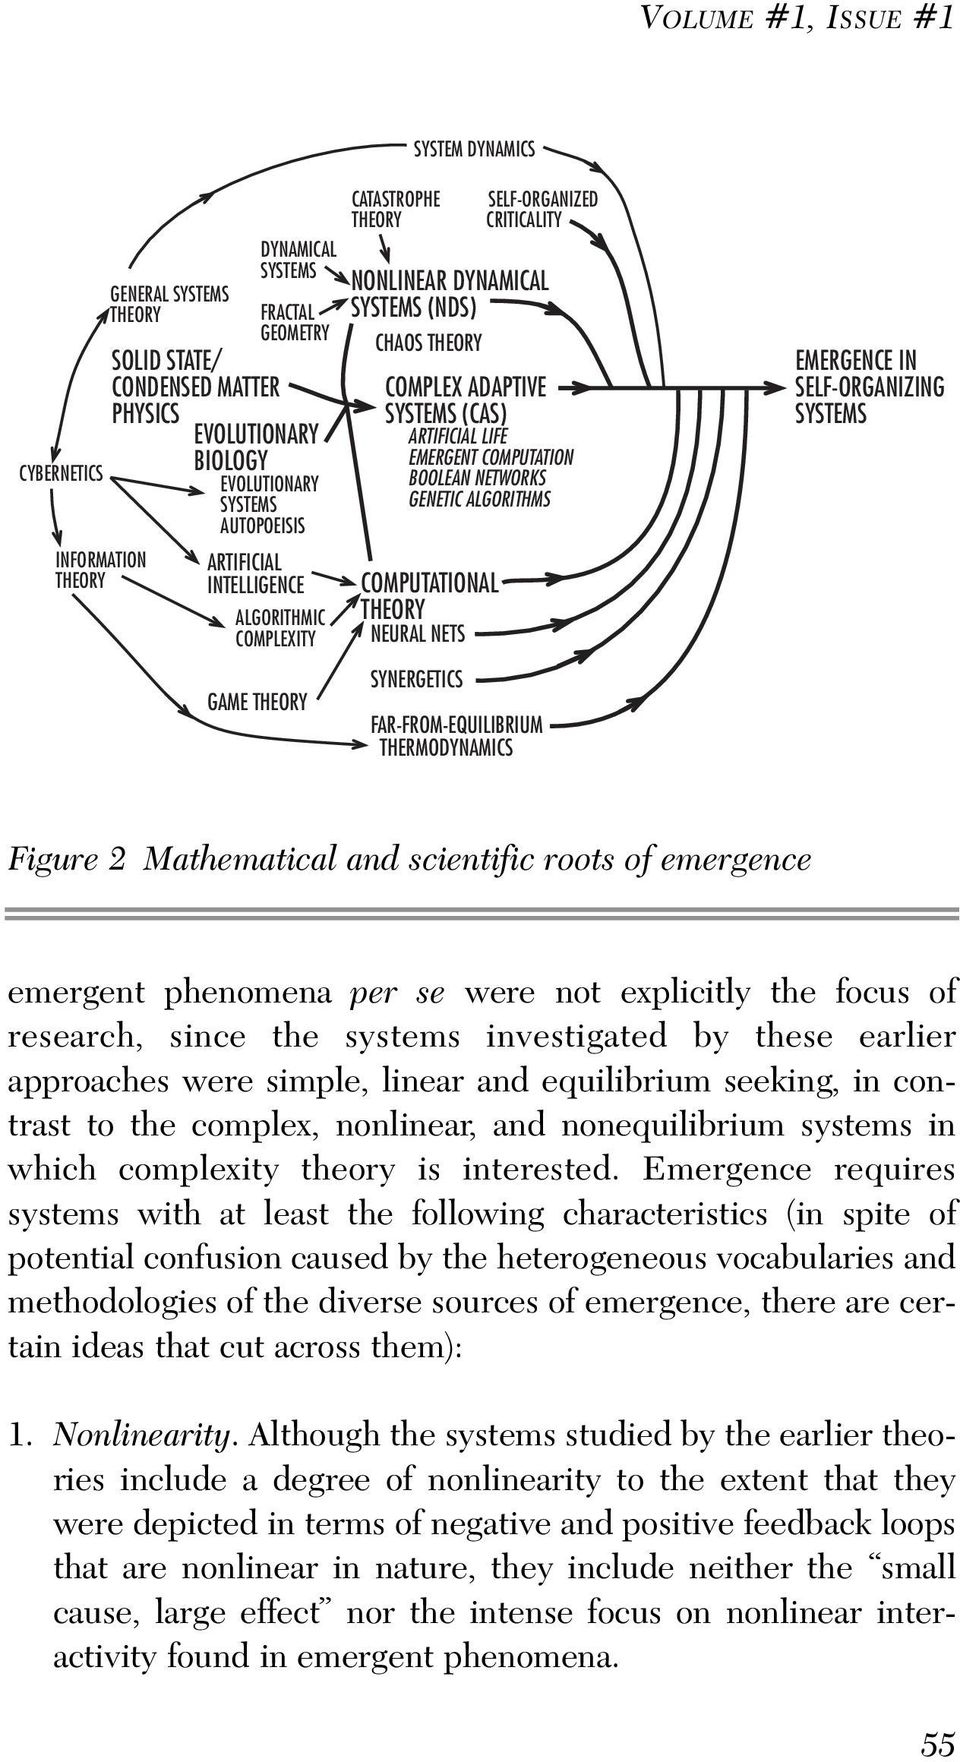 COMPLEXITY GAME THEORY CATASTROPHE THEORY SYSTEM DYNAMICS SELF-ORGANIZED CRITICALITY NONLINEAR DYNAMICAL SYSTEMS (NDS) COMPUTATIONAL THEORY NEURAL NETS SYNERGETICS FAR-FROM-EQUILIBRIUM THERMODYNAMICS